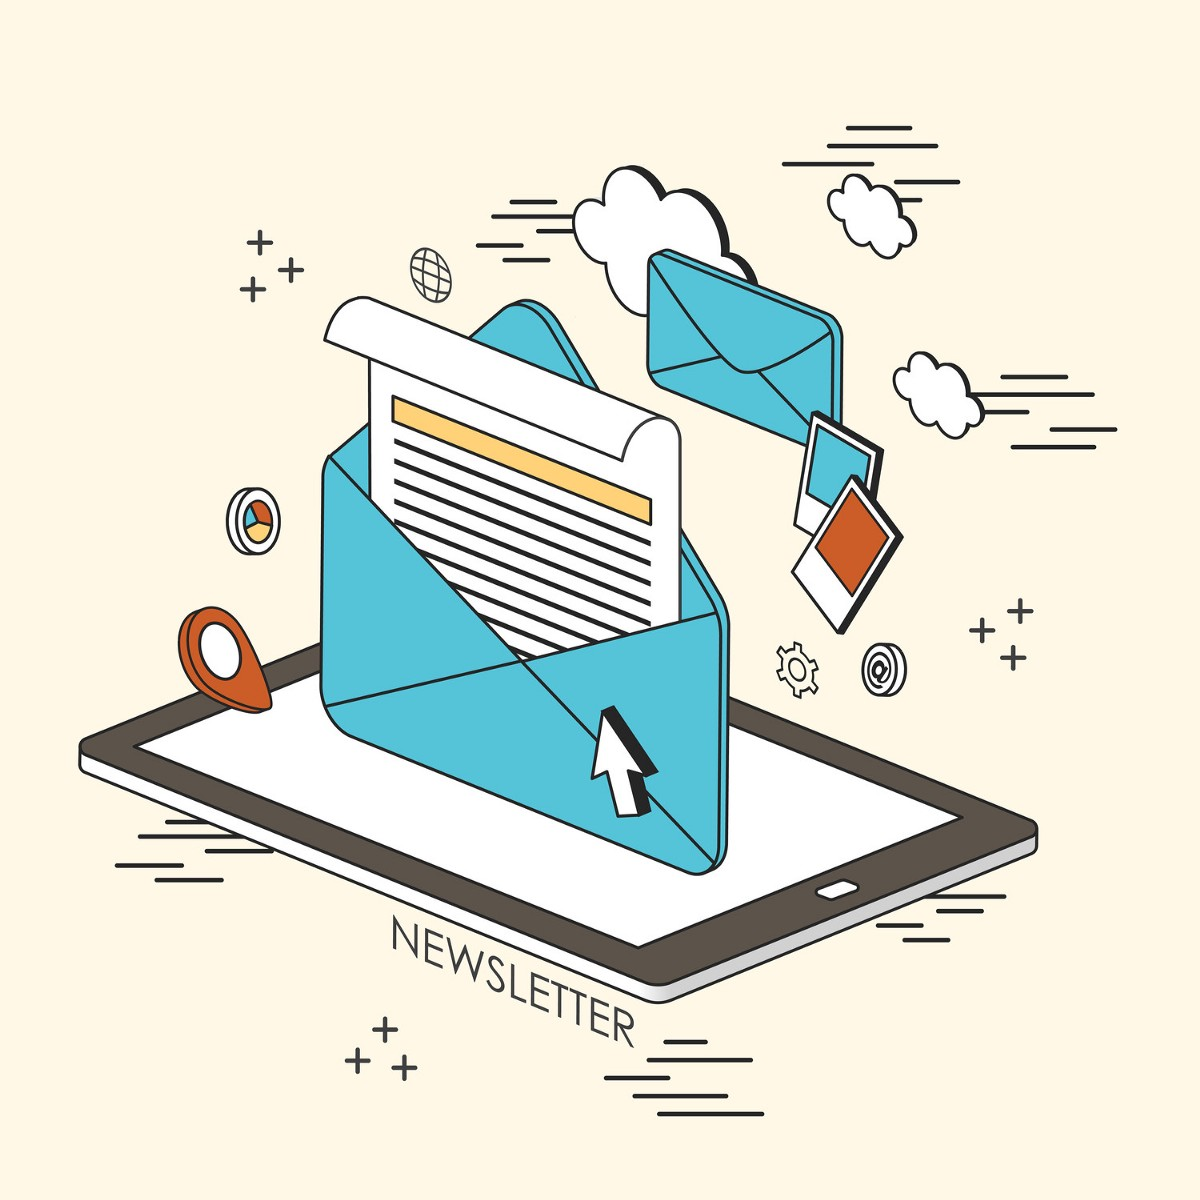 Drawing subscribers to your book-related newsletter: 7 insider tips